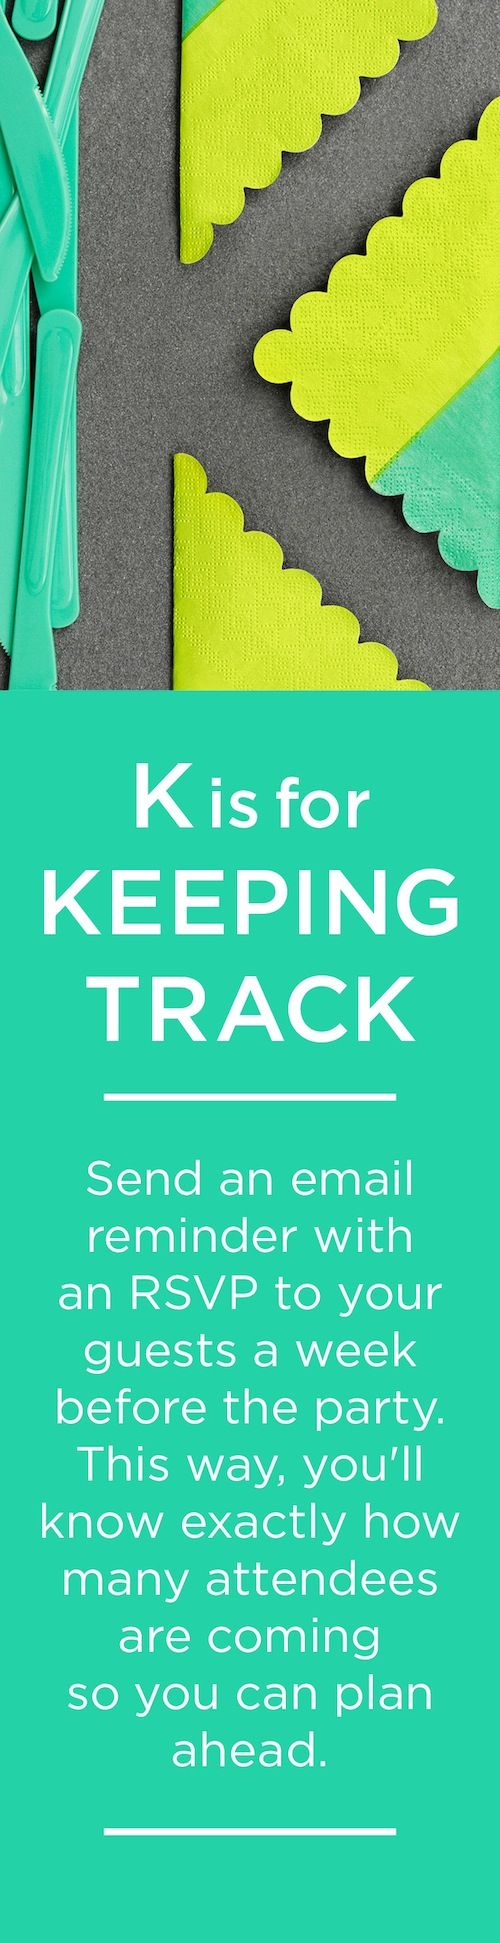 K is for KEEPING TRACK